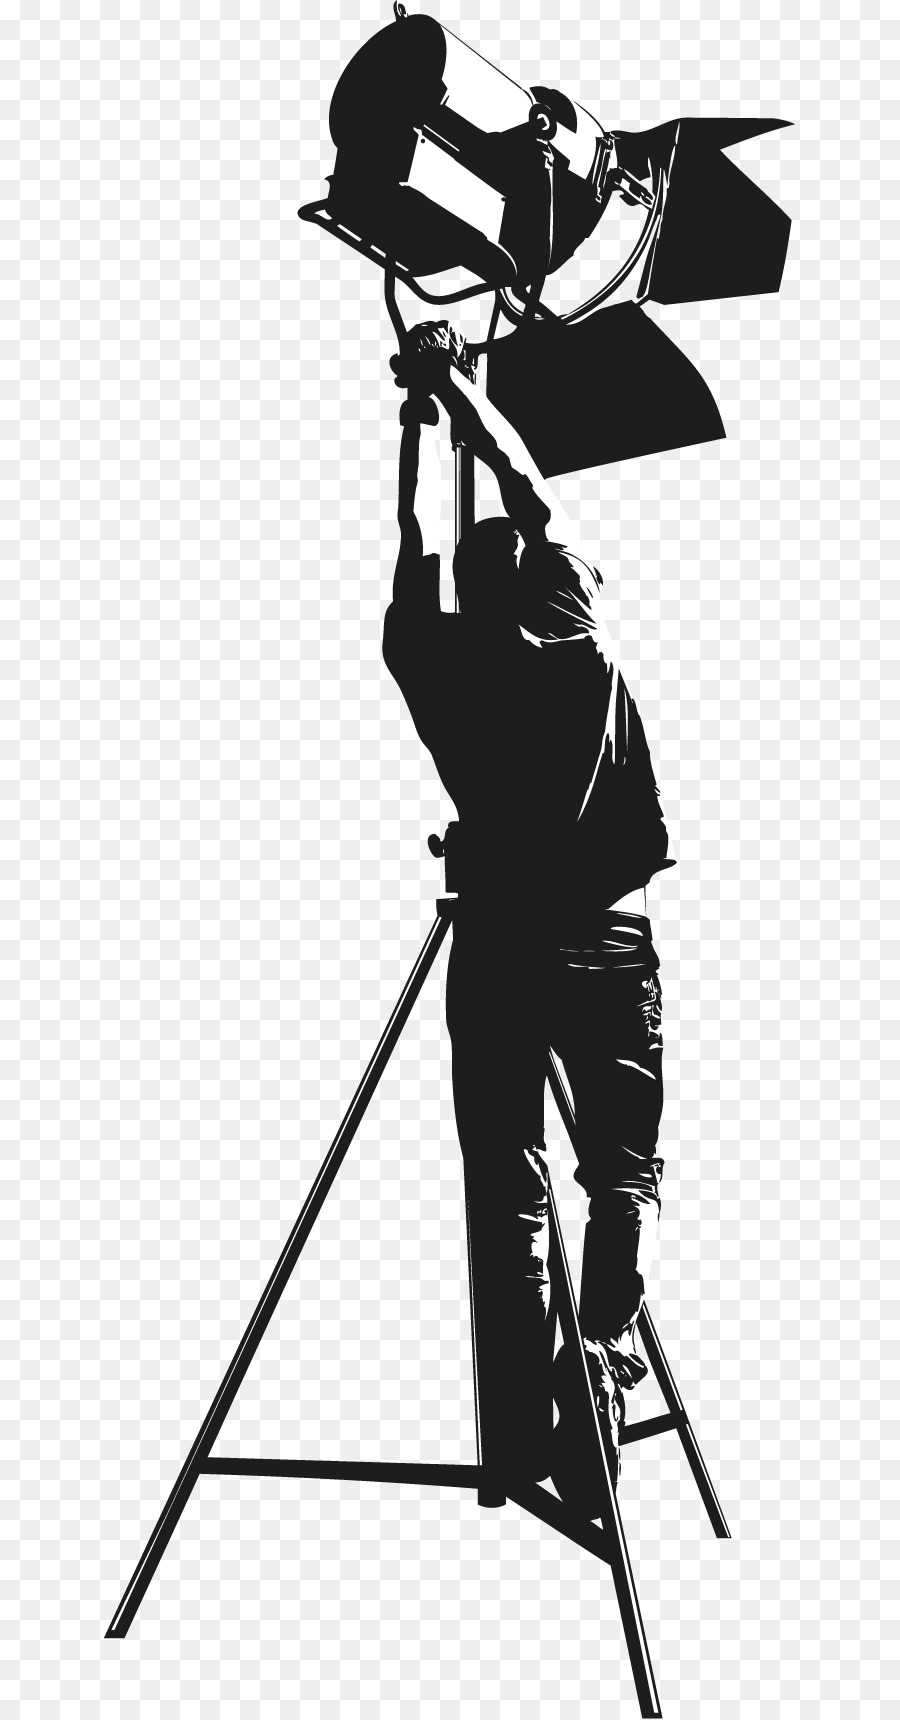 lighting technician. Lighting Technician Stock Photography Royalty-free - Black Photographer